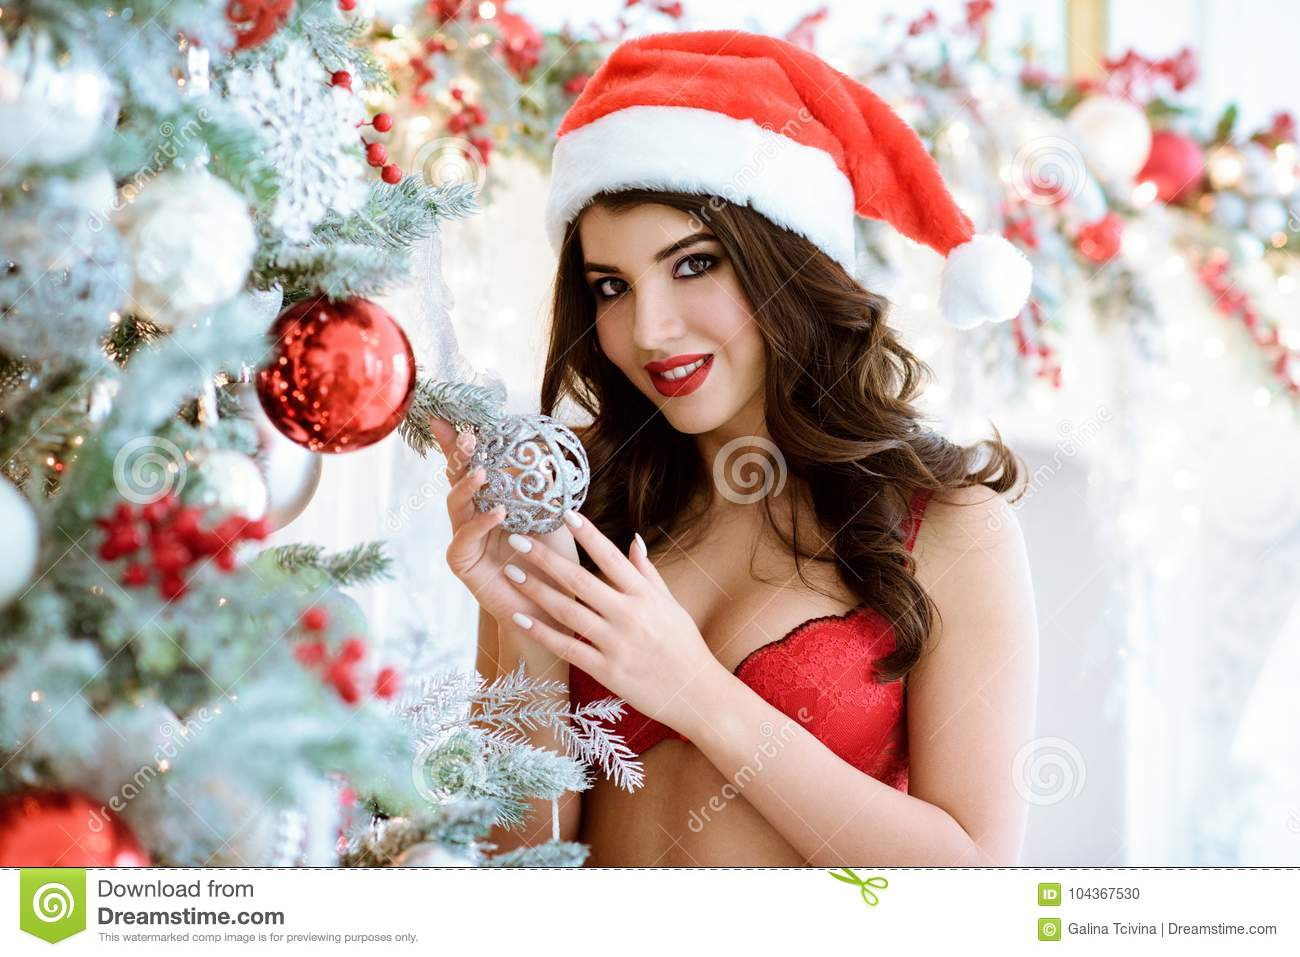 By christmas trees girls Nearly images naked